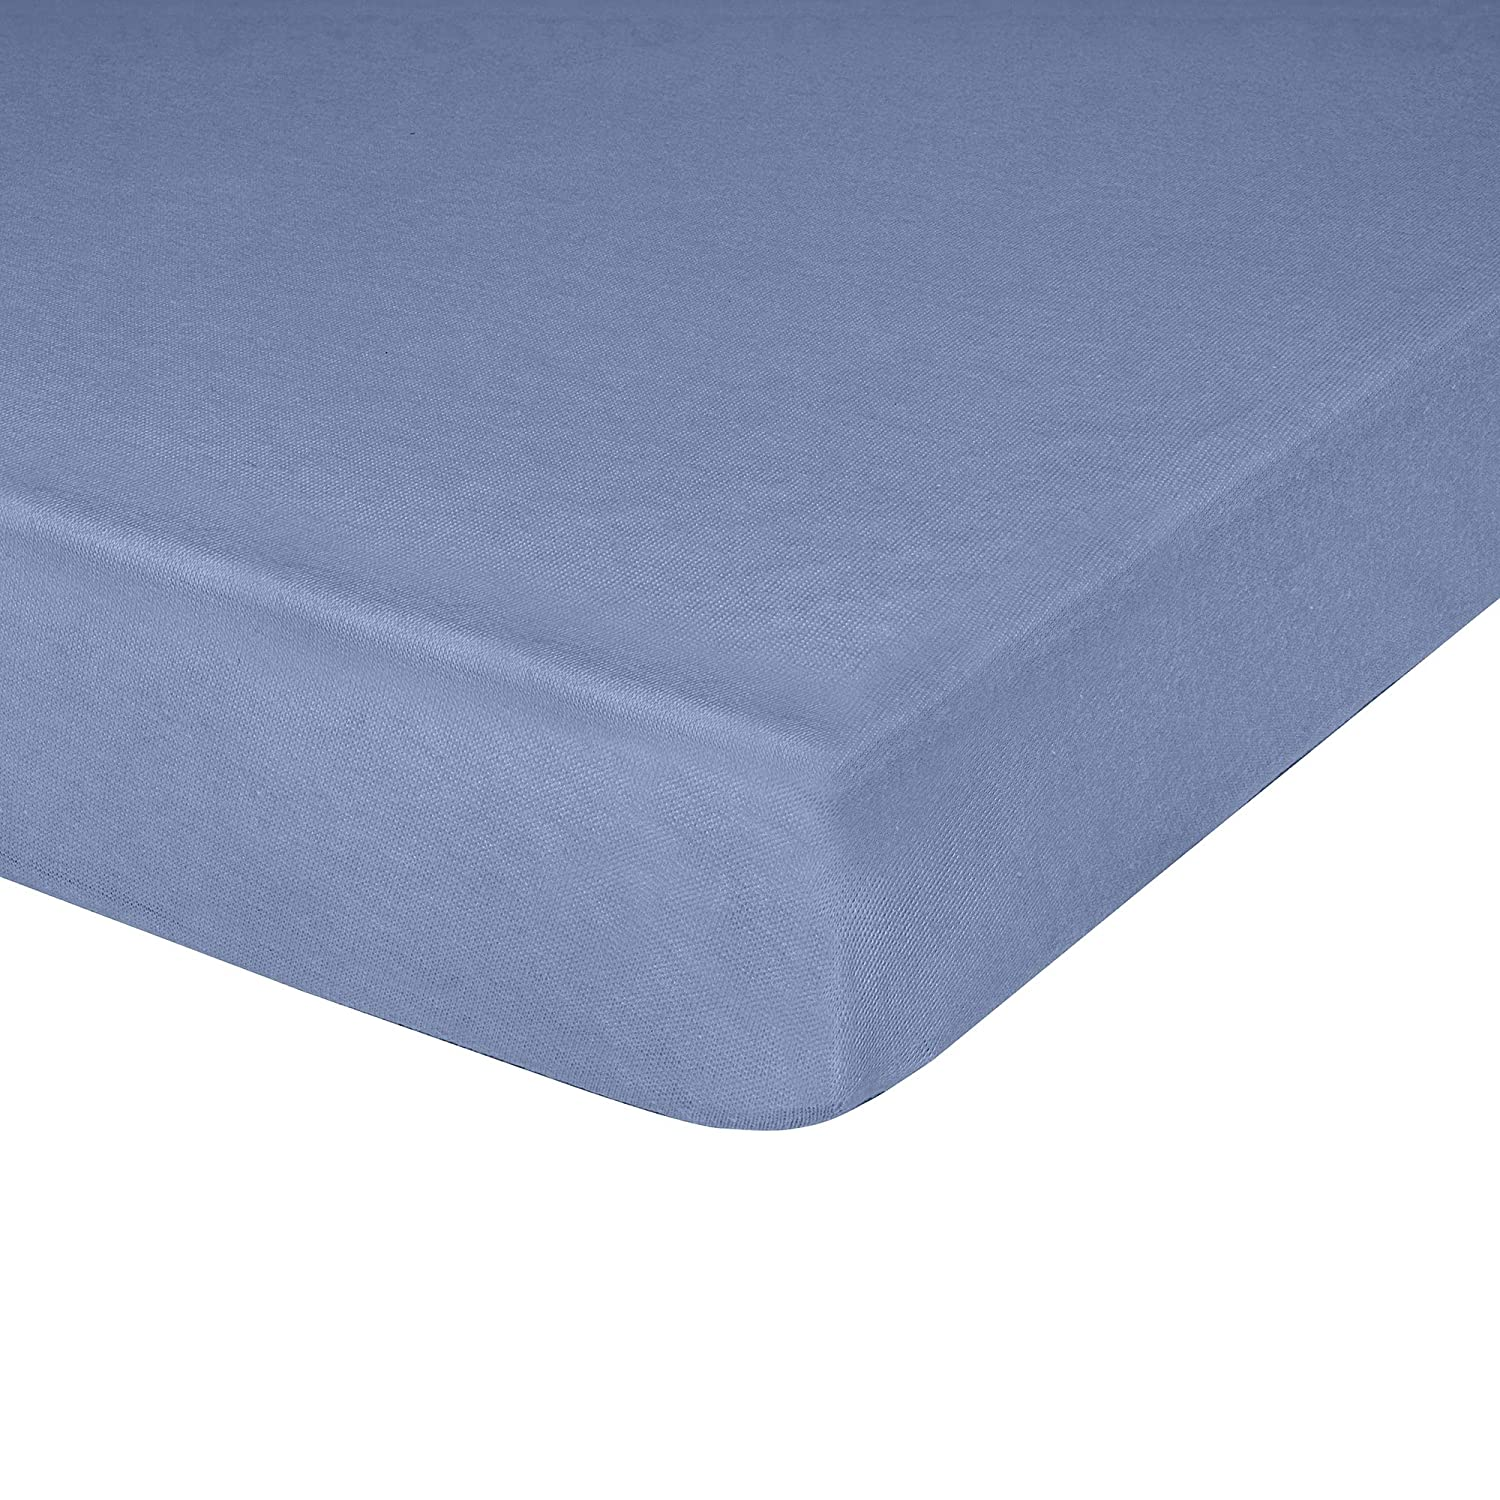 """IDEAhome Jersey Knit Fitted Cot Sheet, Soft Material, Suitable for Bunk Beds, Camping, RVs, Folding Beds, Boys & Girls, 75"""" x 33"""" with 8"""" Pocket, Denim, 1 Pack"""